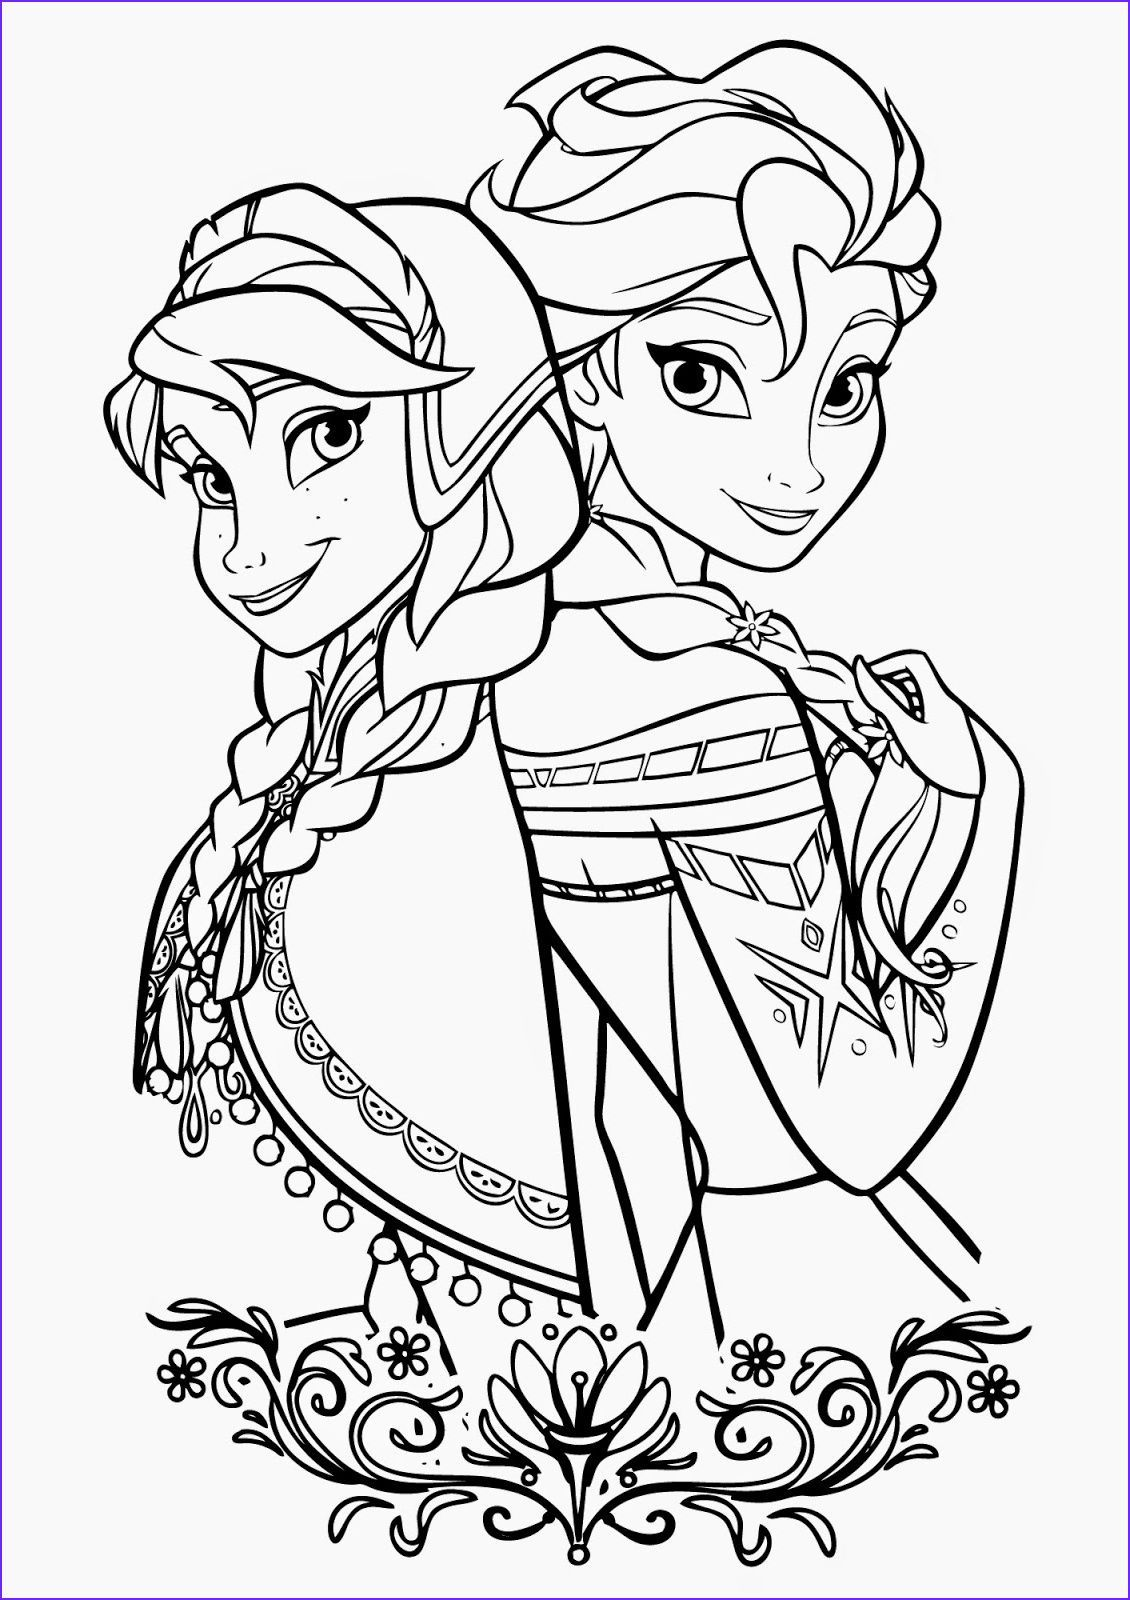 45 Inspirational Image Of Elsa And Anna Coloring Pages Coloring Page For Kids In 2020 Elsa Coloring Pages Princess Coloring Pages Elsa Coloring